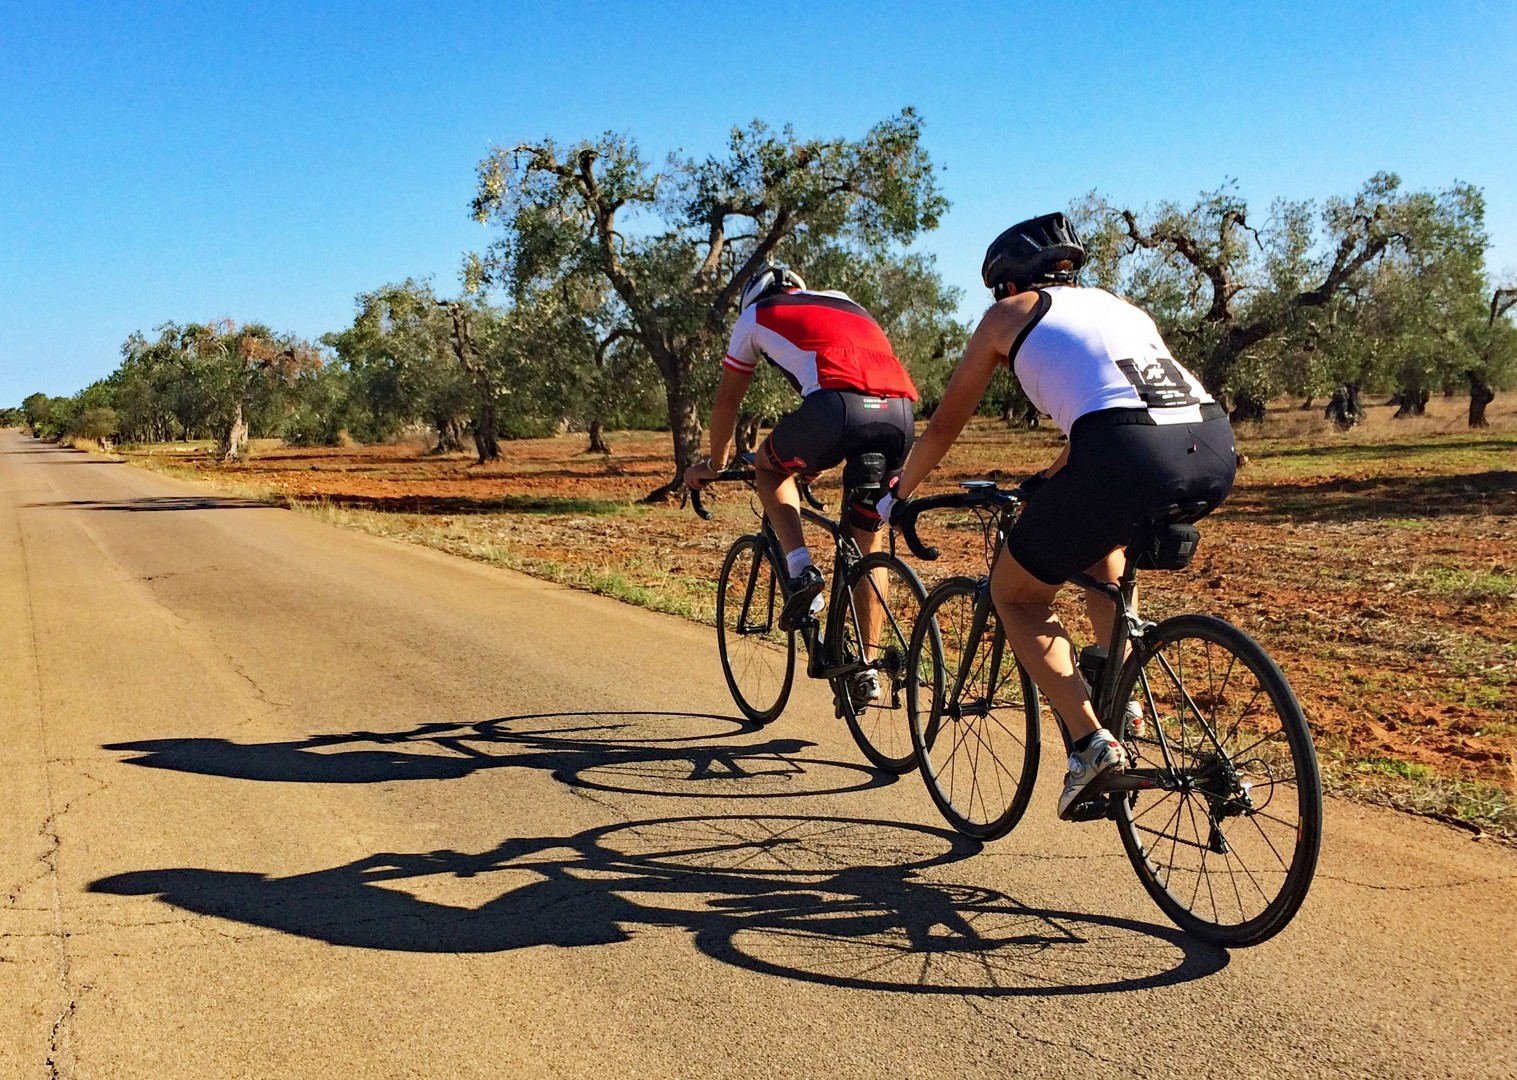 ride-through-olive-groves-guided-cycling-trip.jpg - Italy - Grand Traverse - South to North (22 days) - Guided Road Cycling Holiday - Road Cycling